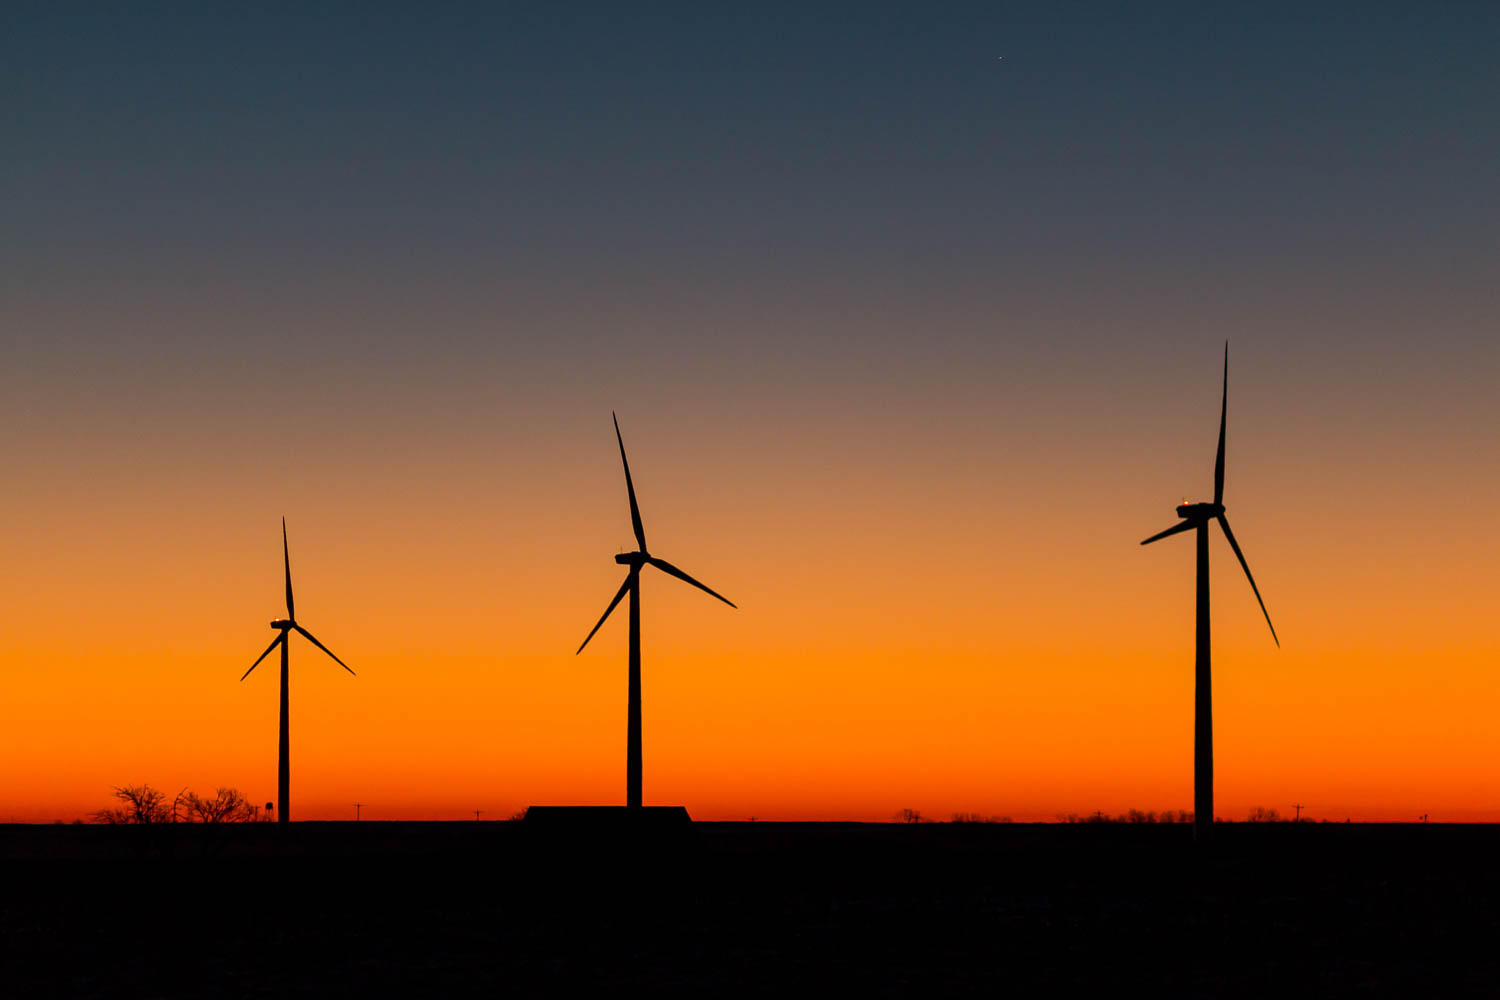 three wind turbines silhouetted against a setting sun